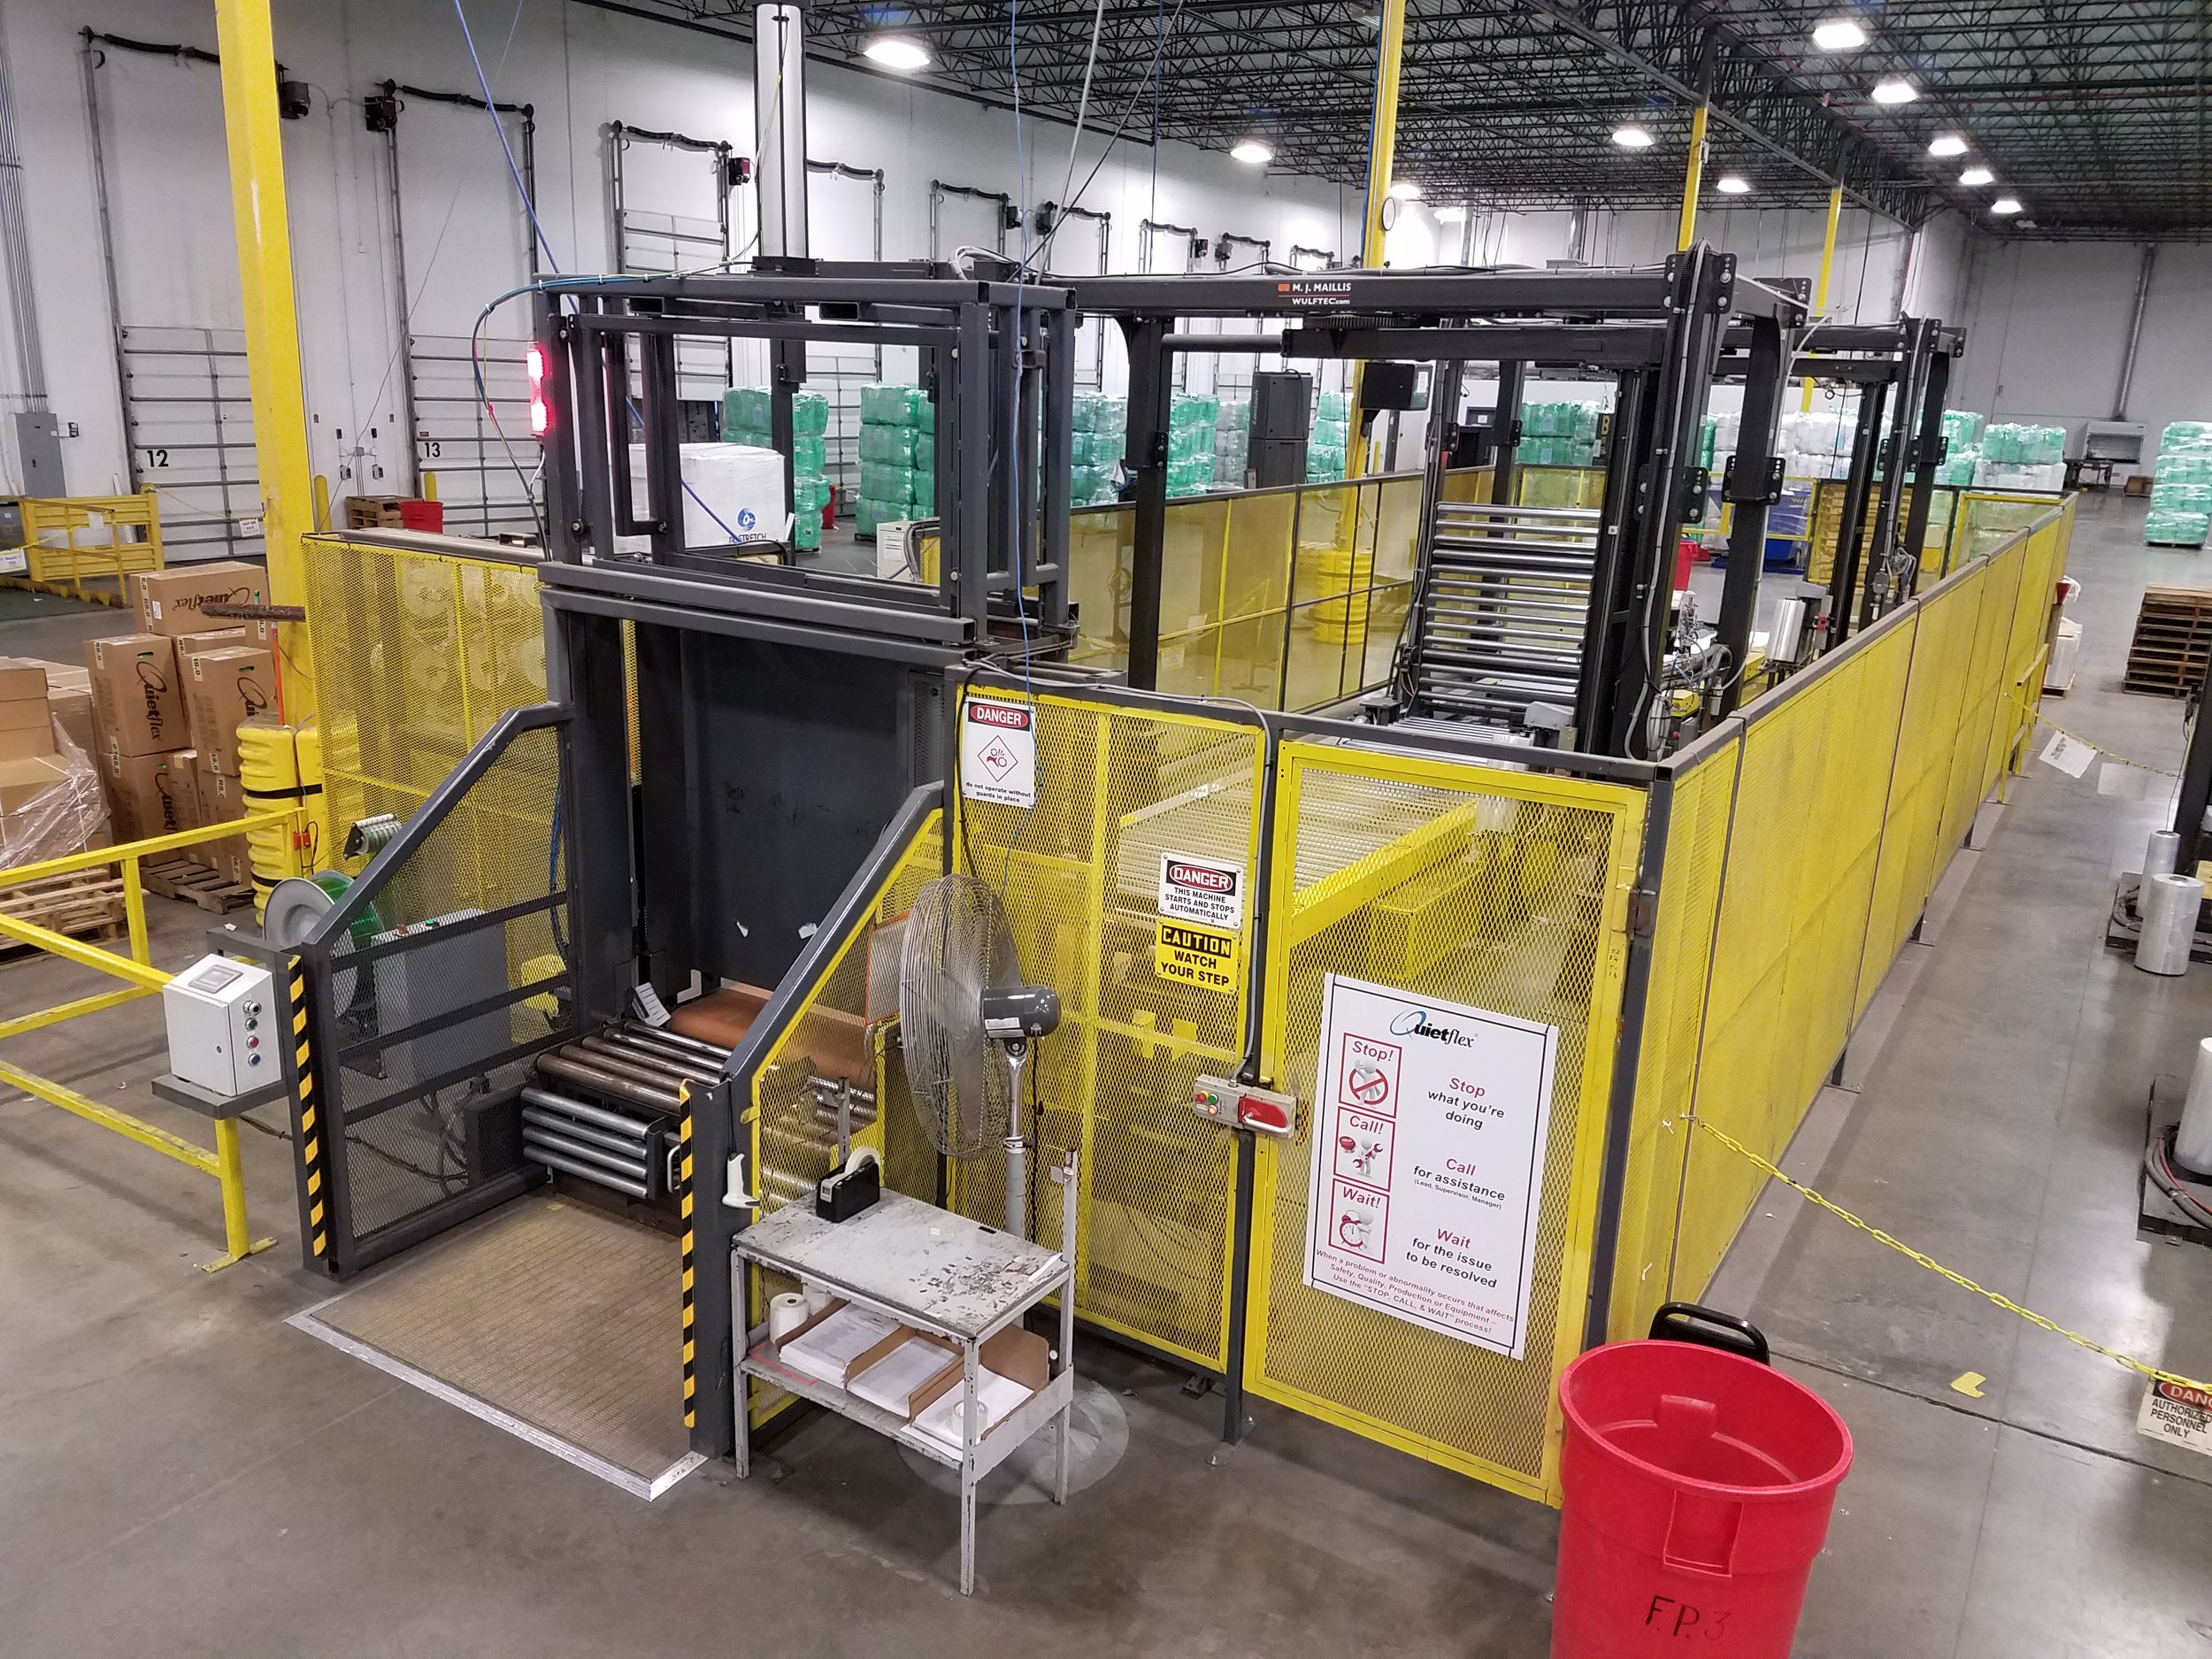 Loading Bay and machine overview.